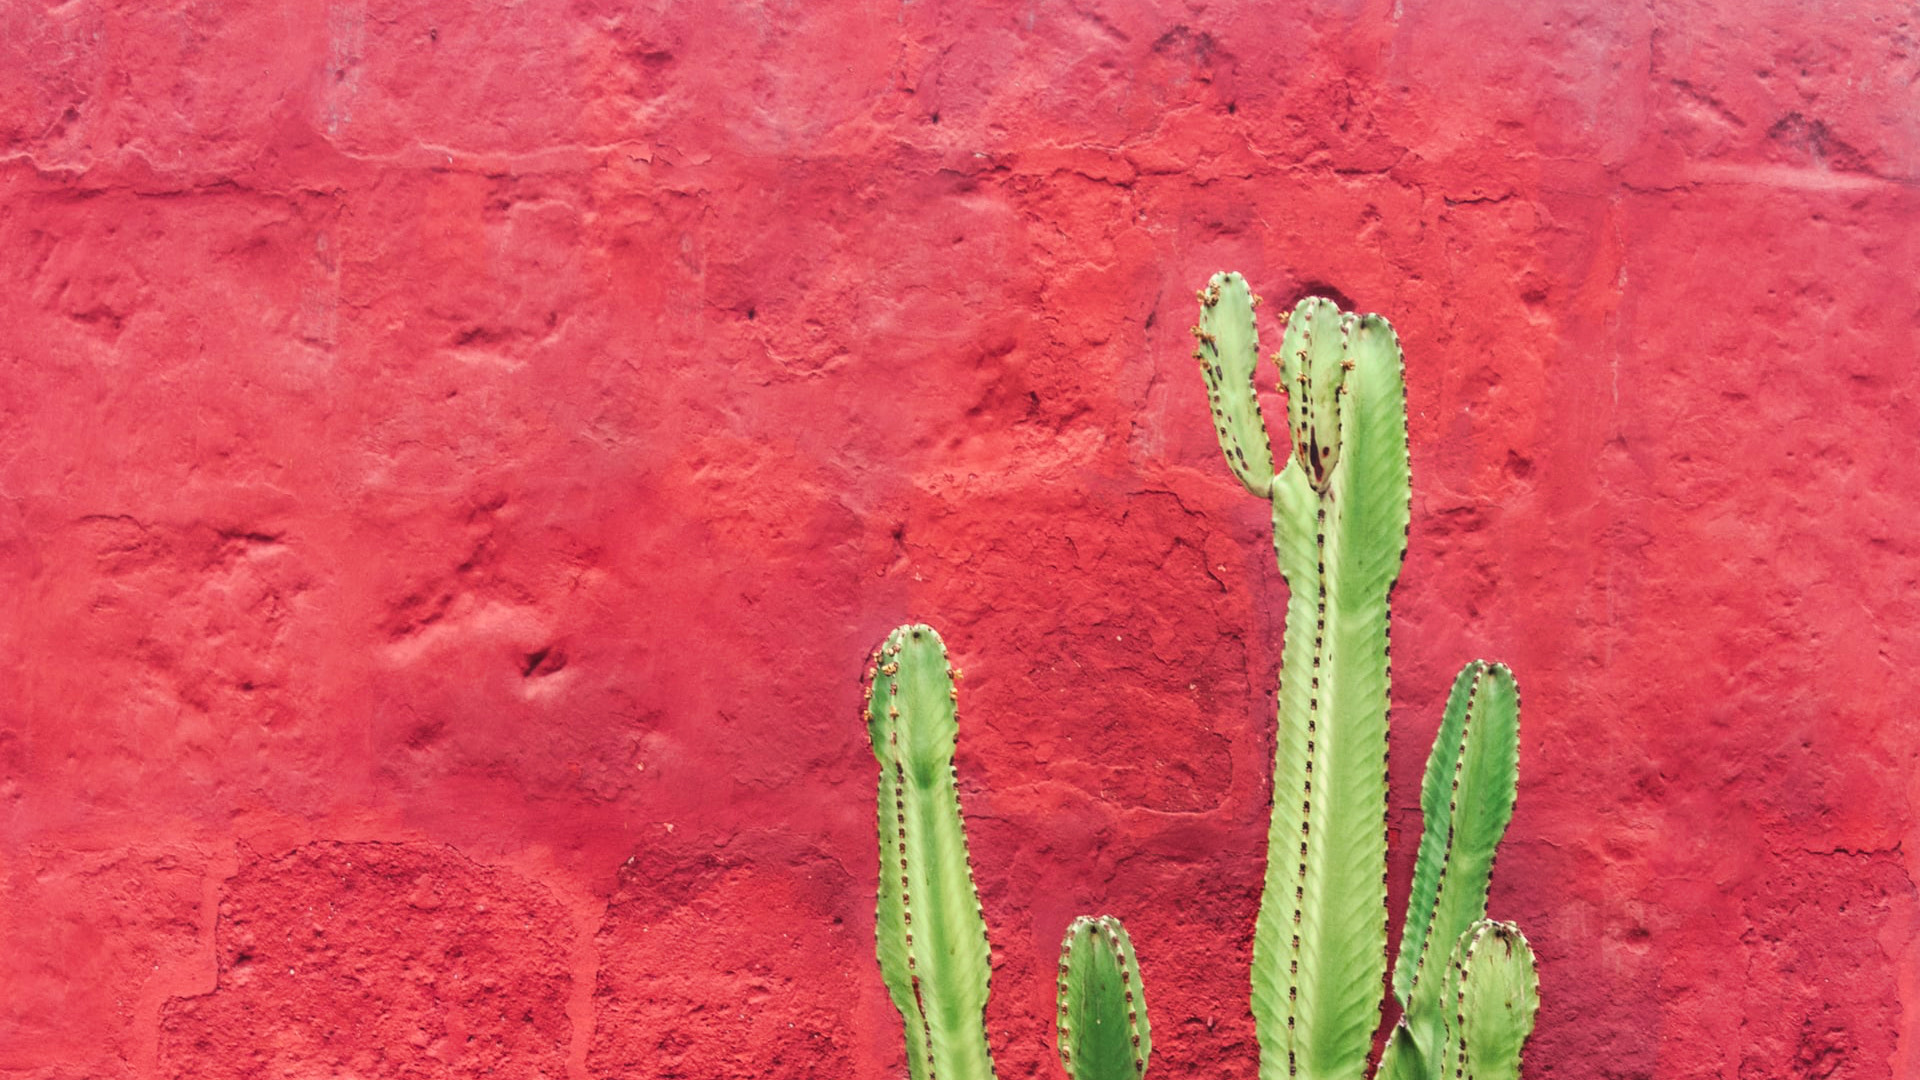 Green cactus in front of a red wall.